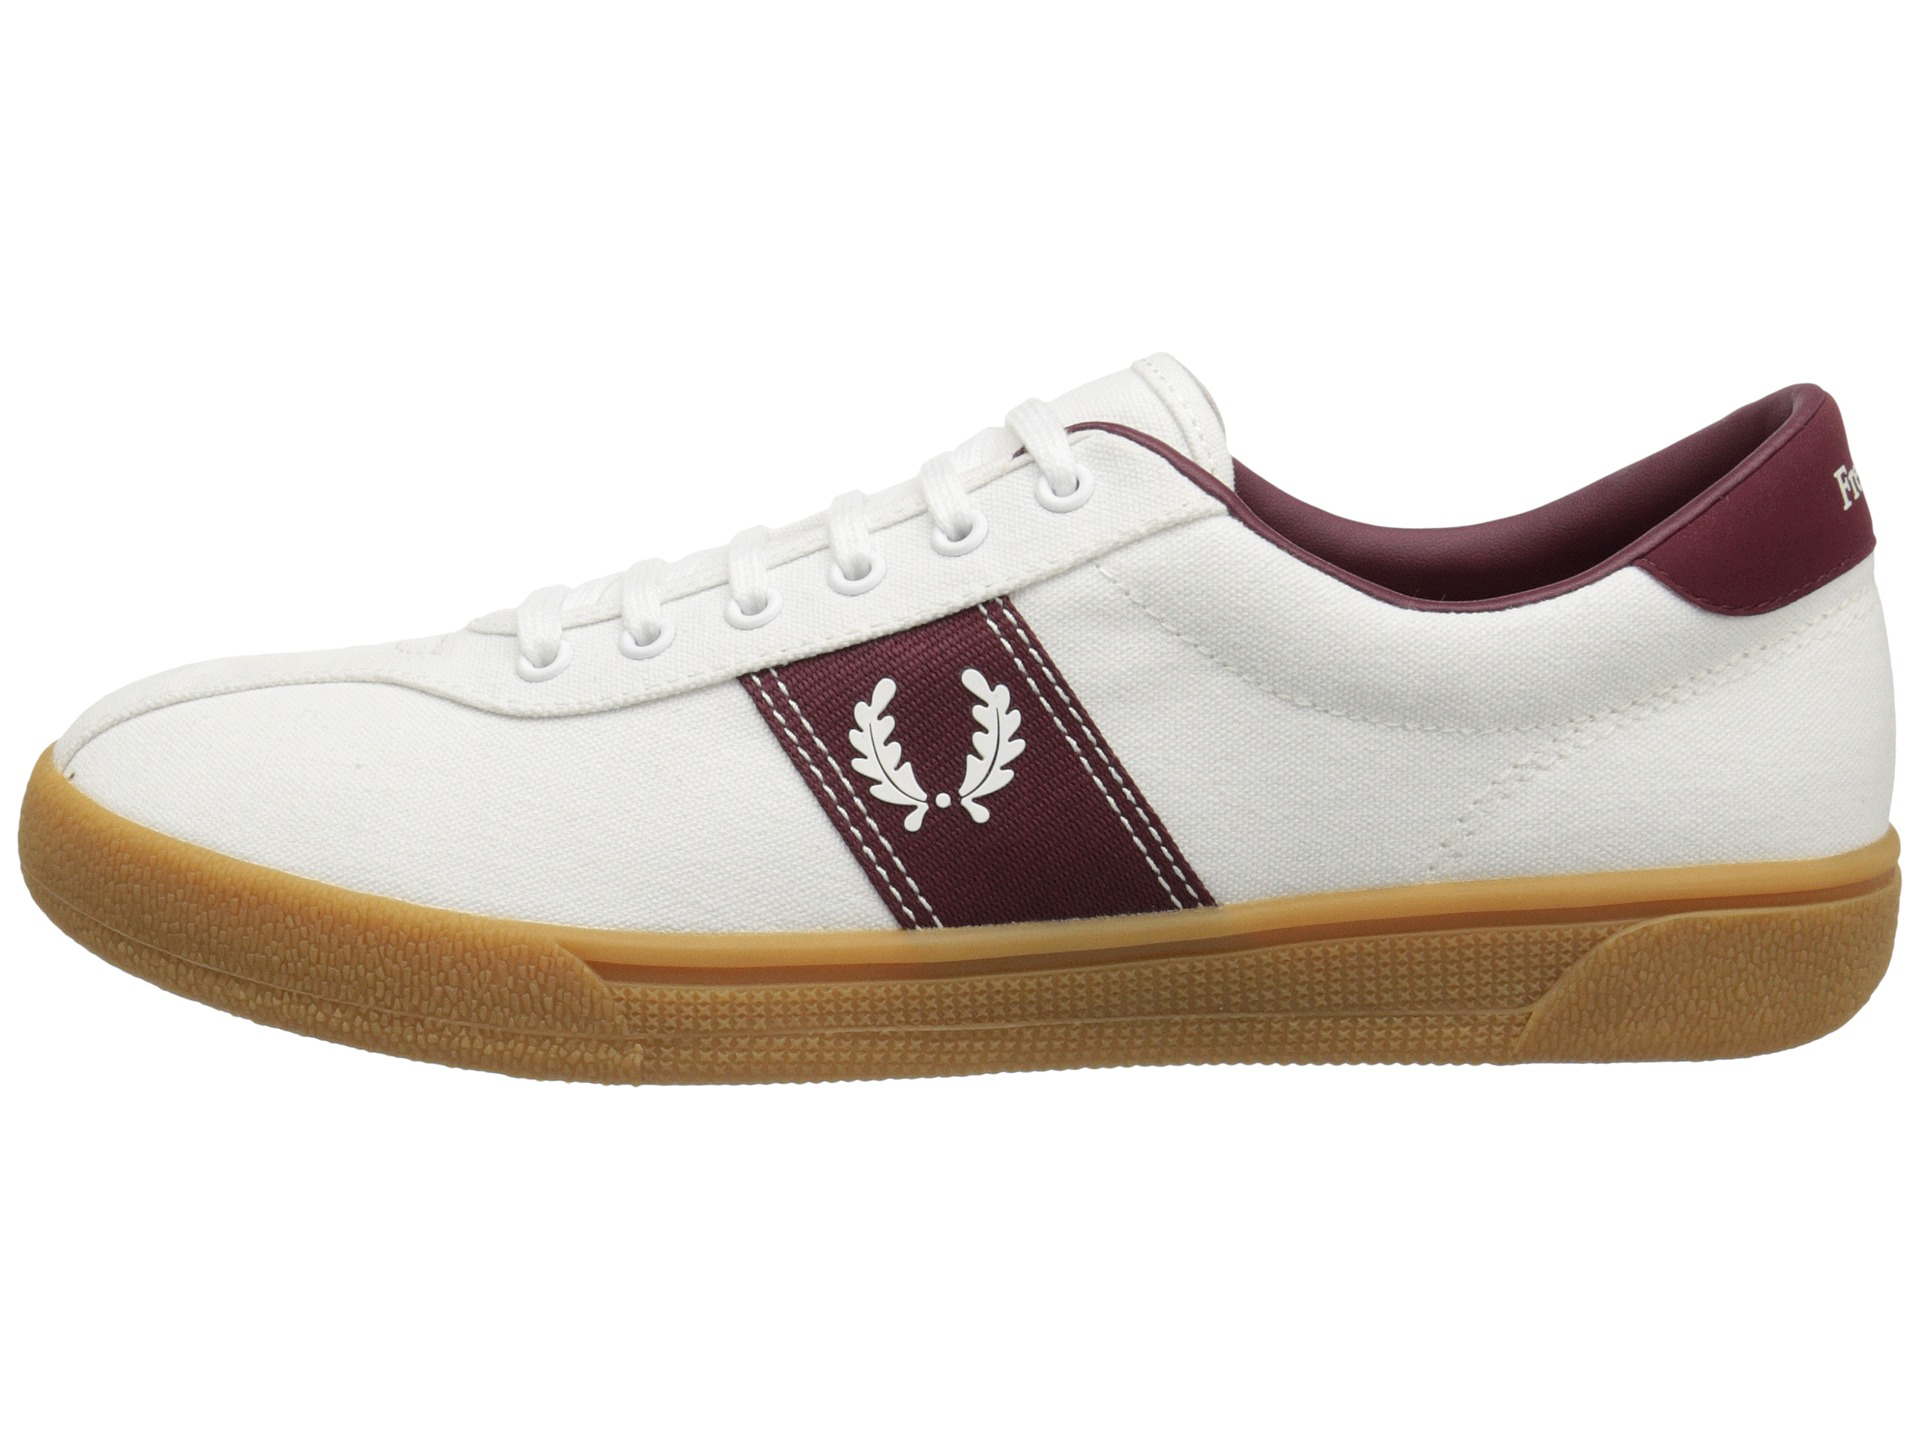 fred perry tennis shoe 1 canvas zappos free shipping